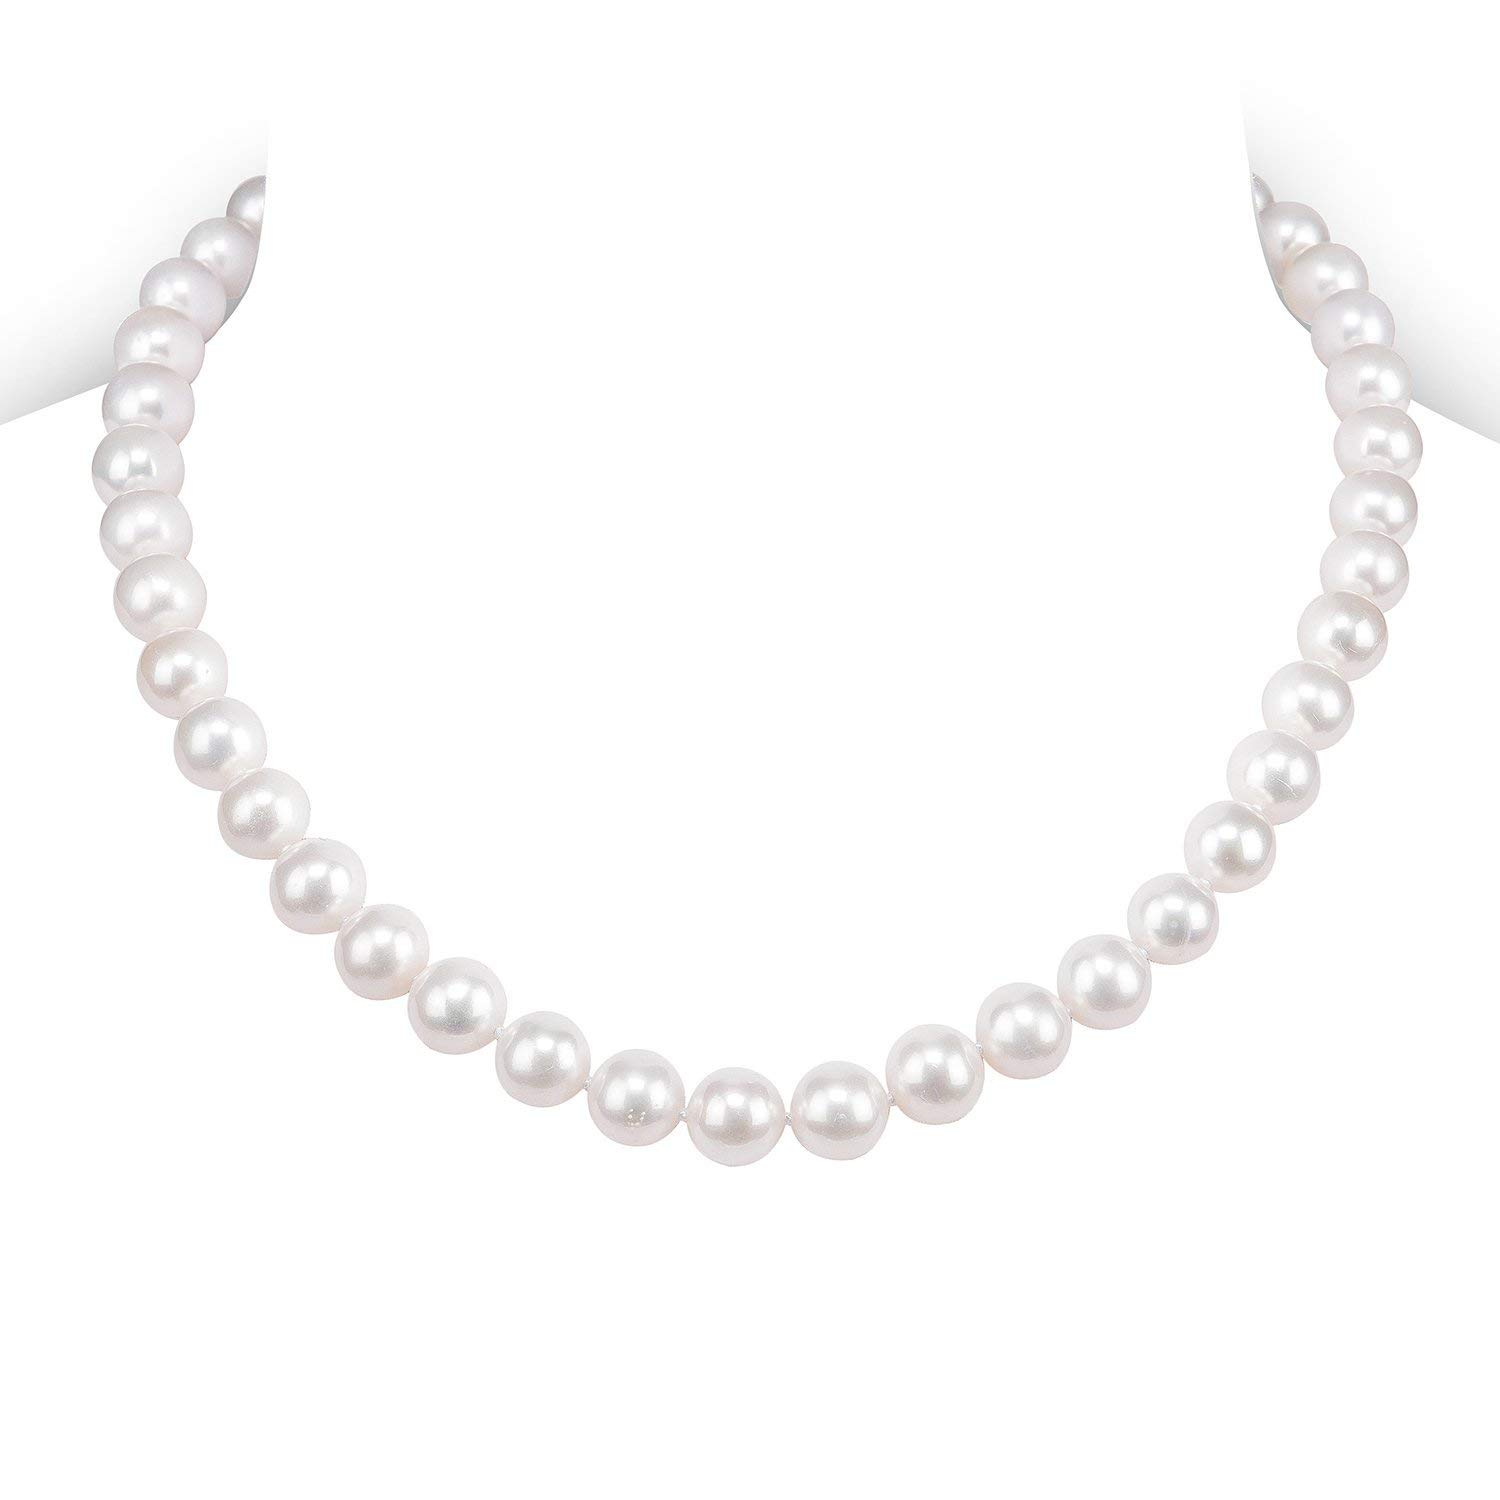 PAVOI Handpicked Freshwater Cultured Pearl Necklace Strand - High Luster White 5mm) NECKFC165